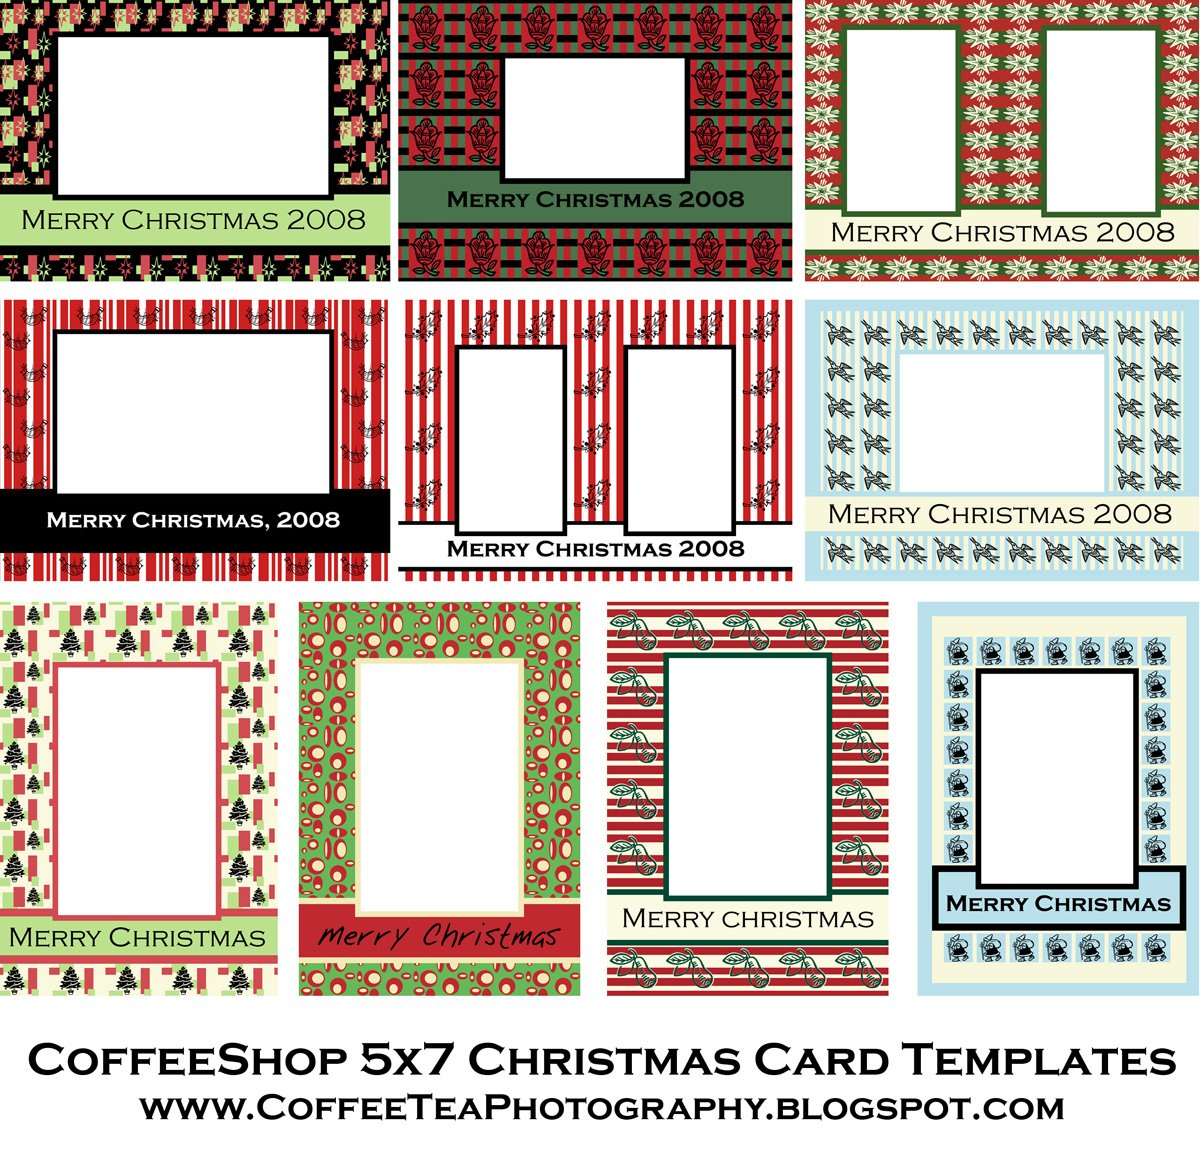 wish you were here postcard template - the coffeeshop blog free coffeeshop christmas card templates